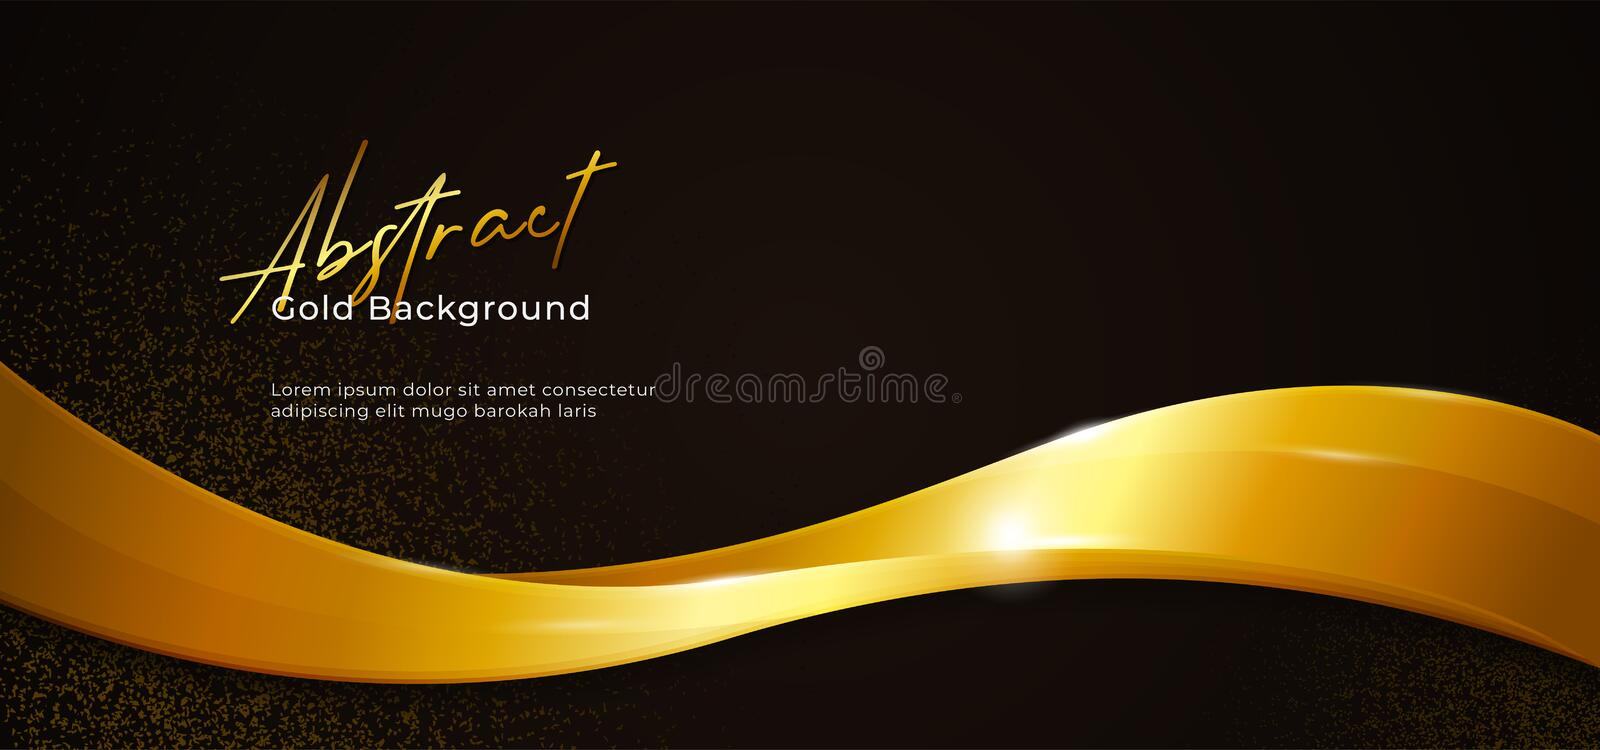 Golden sparkling abstract fluid wave vector illustration with gold glitter on dark black paper background. poster banner template. Design. eps 10 royalty free illustration